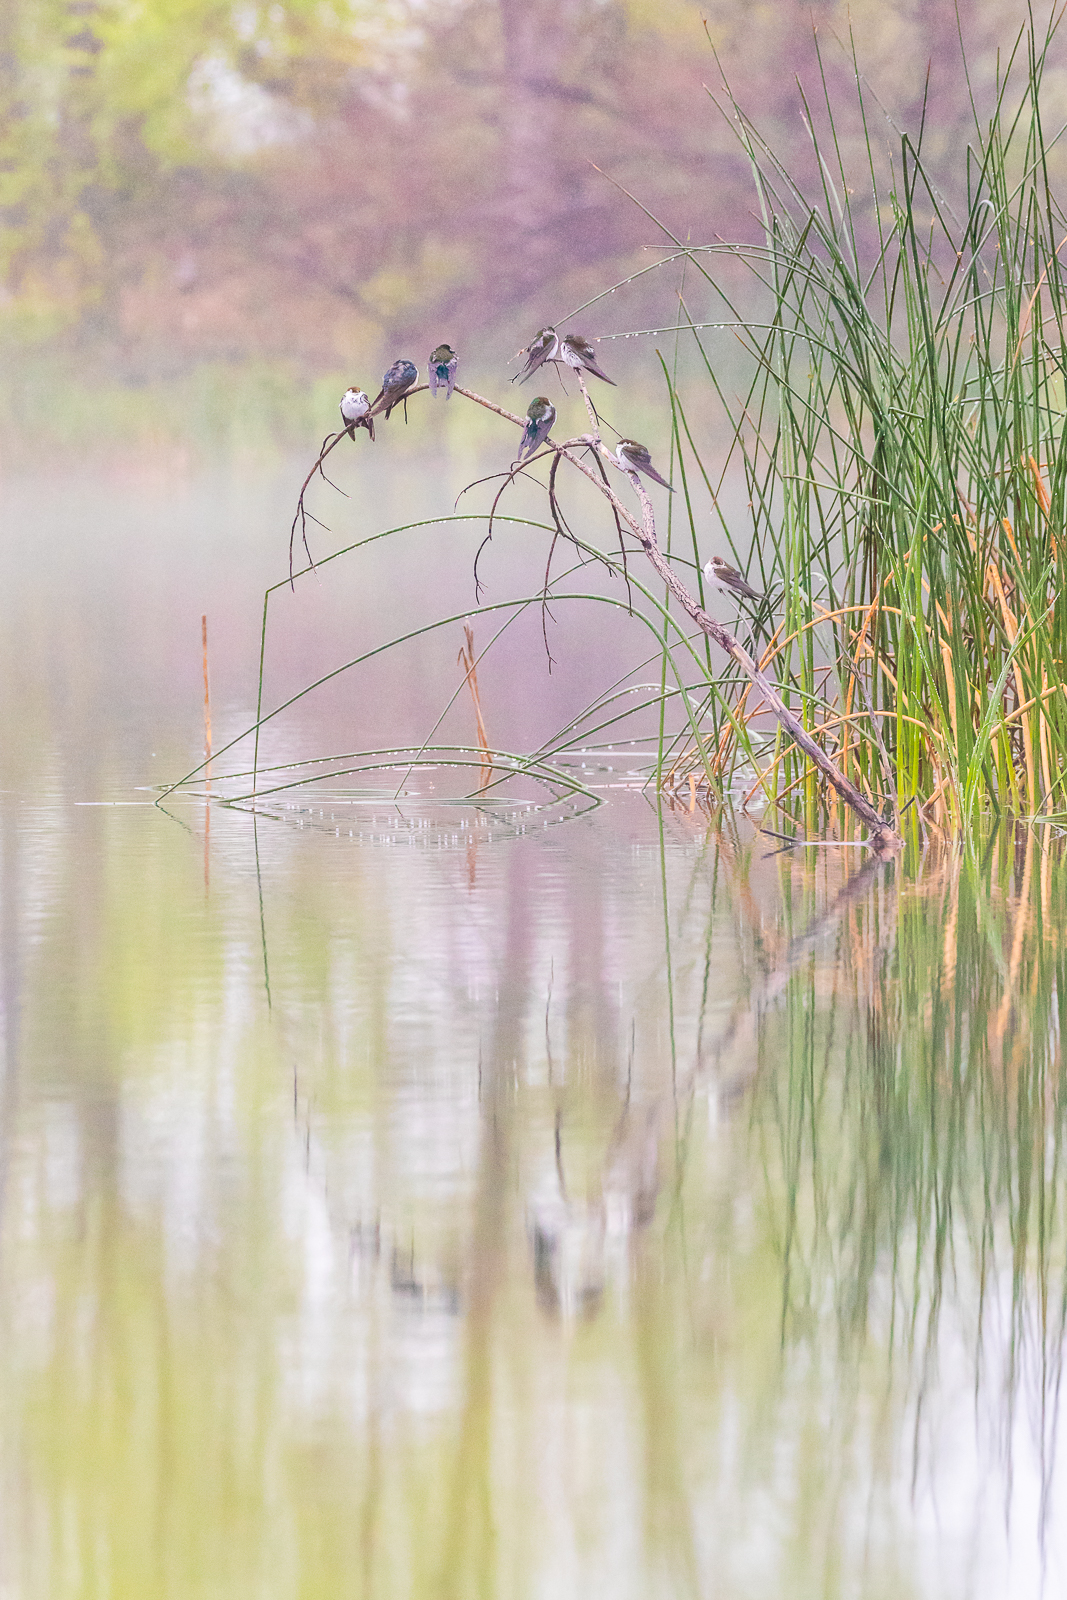 Swallows in the Mist